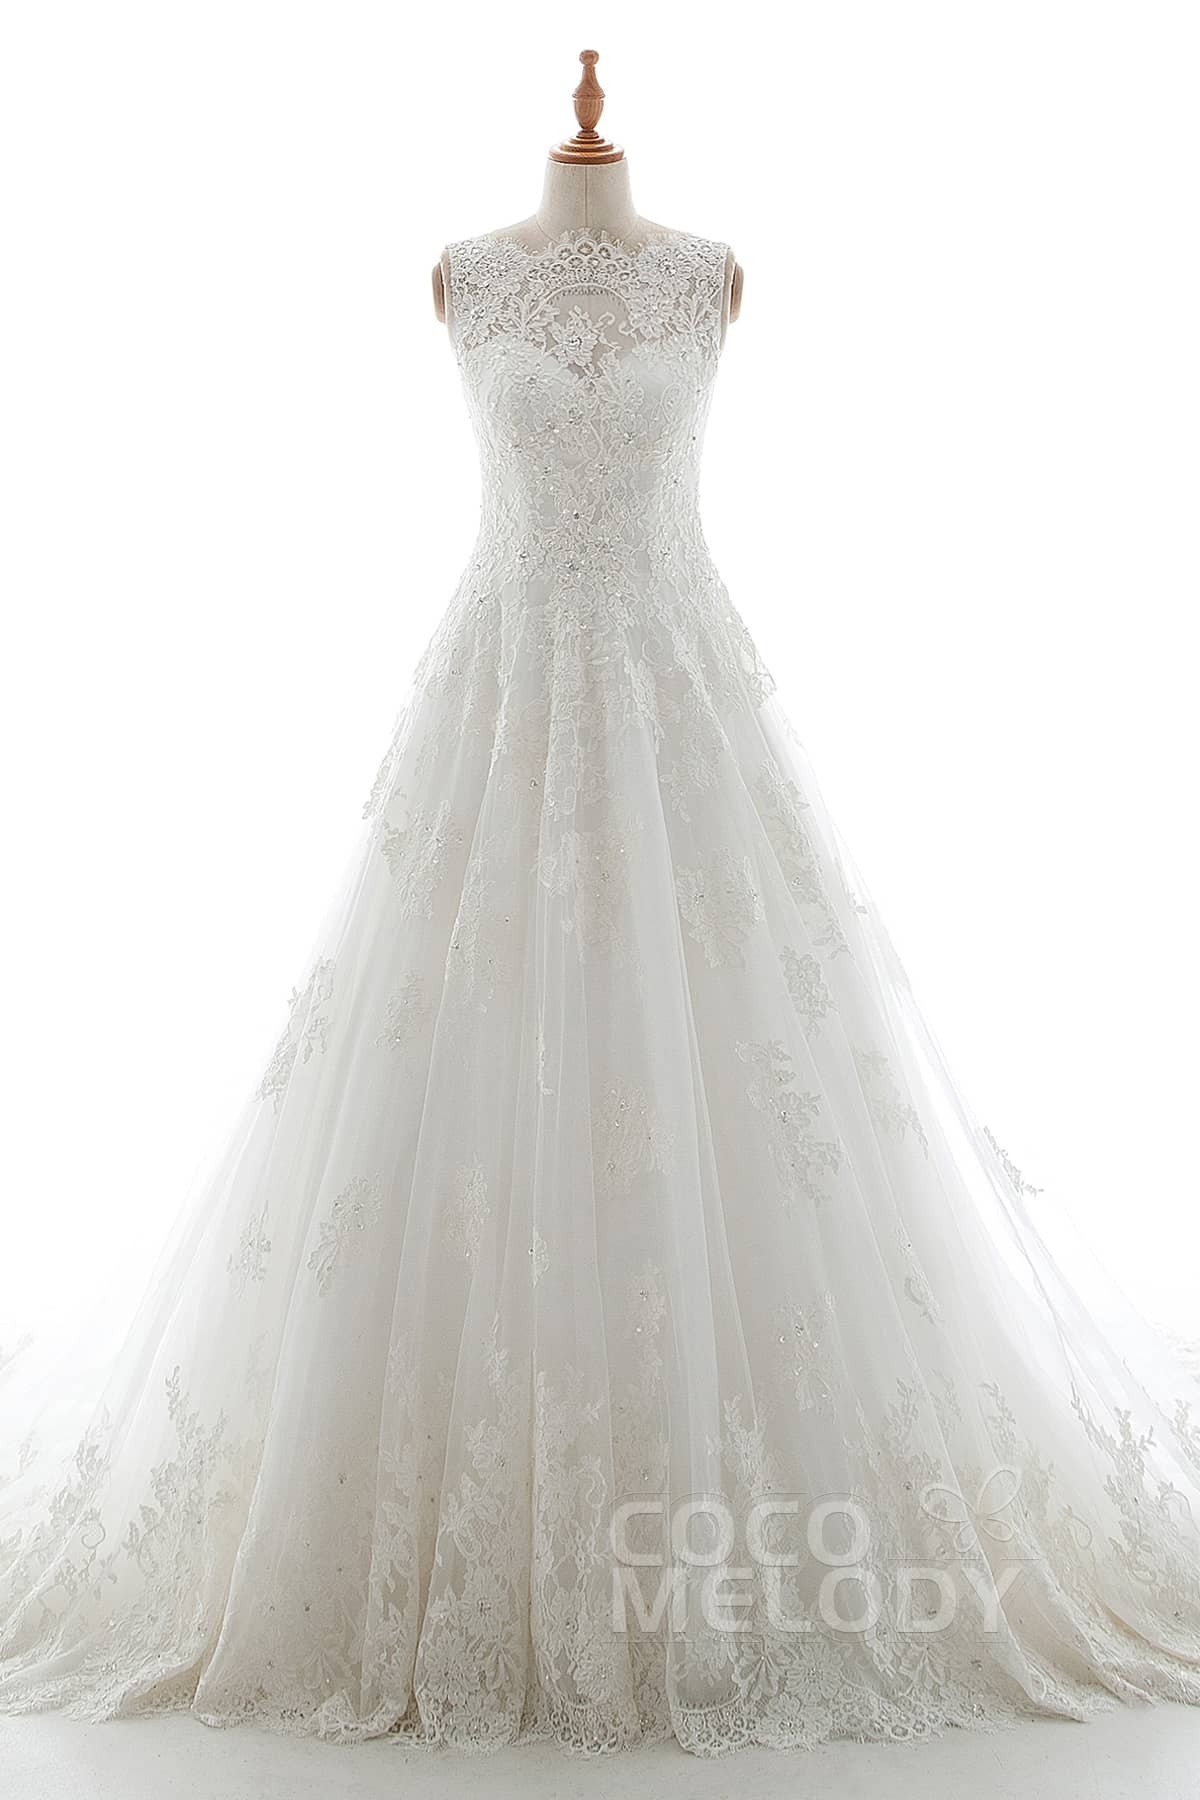 Cocomelody a line court train tulle and elastic satin wedding dress a line court train tulle lace organza and elastic satin wedding dress ld5191 junglespirit Image collections